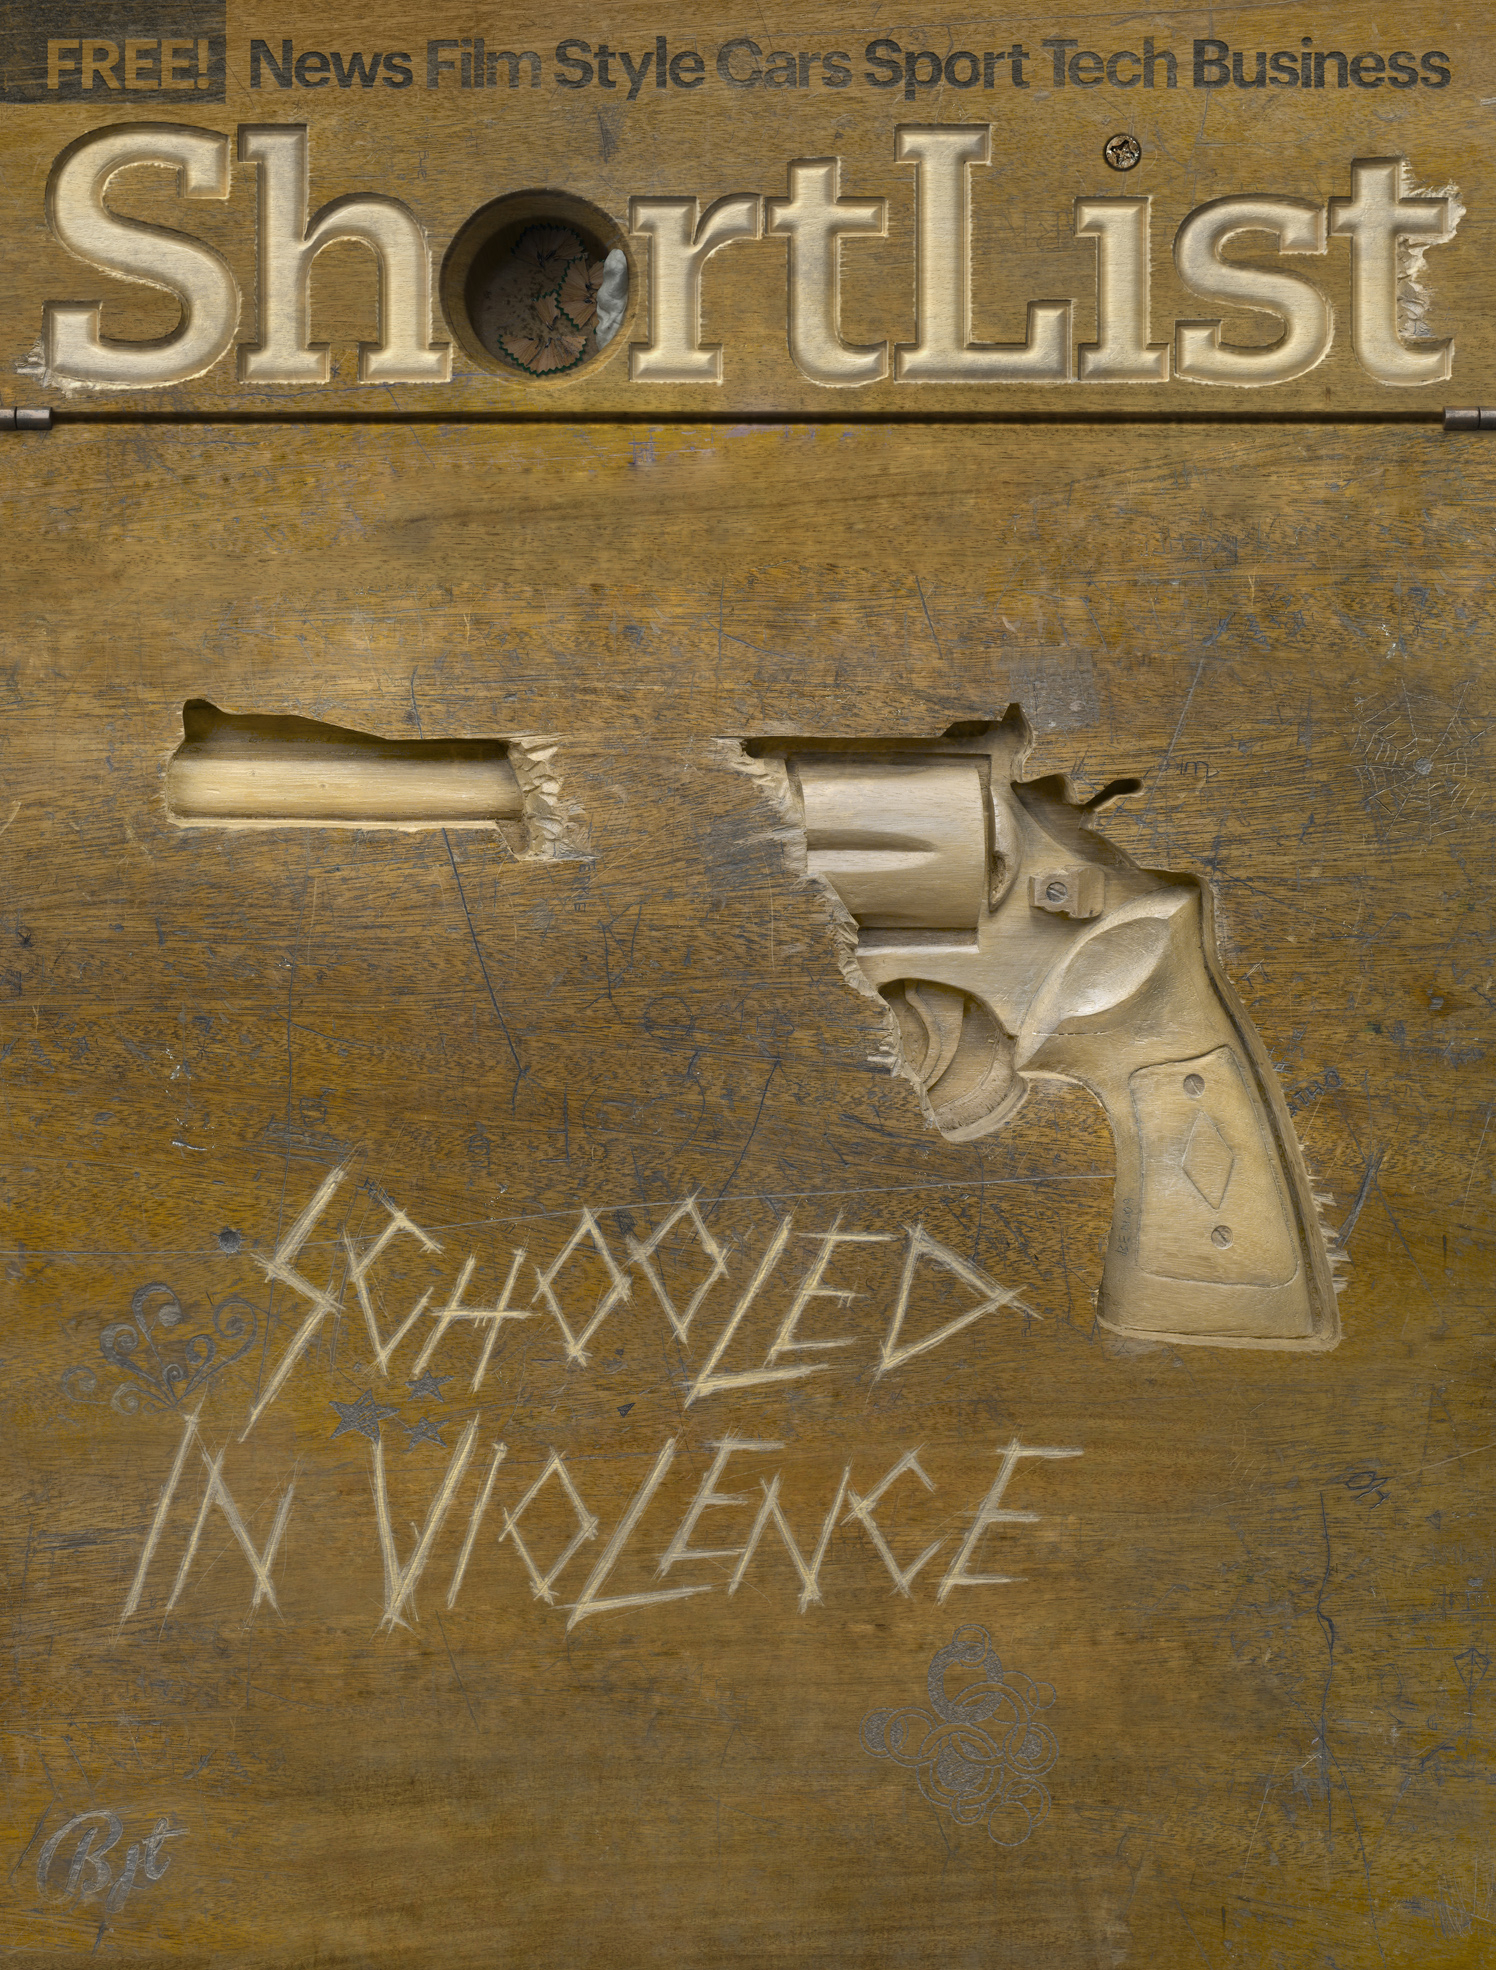 Schooled In Violence / Shortlist Magazine